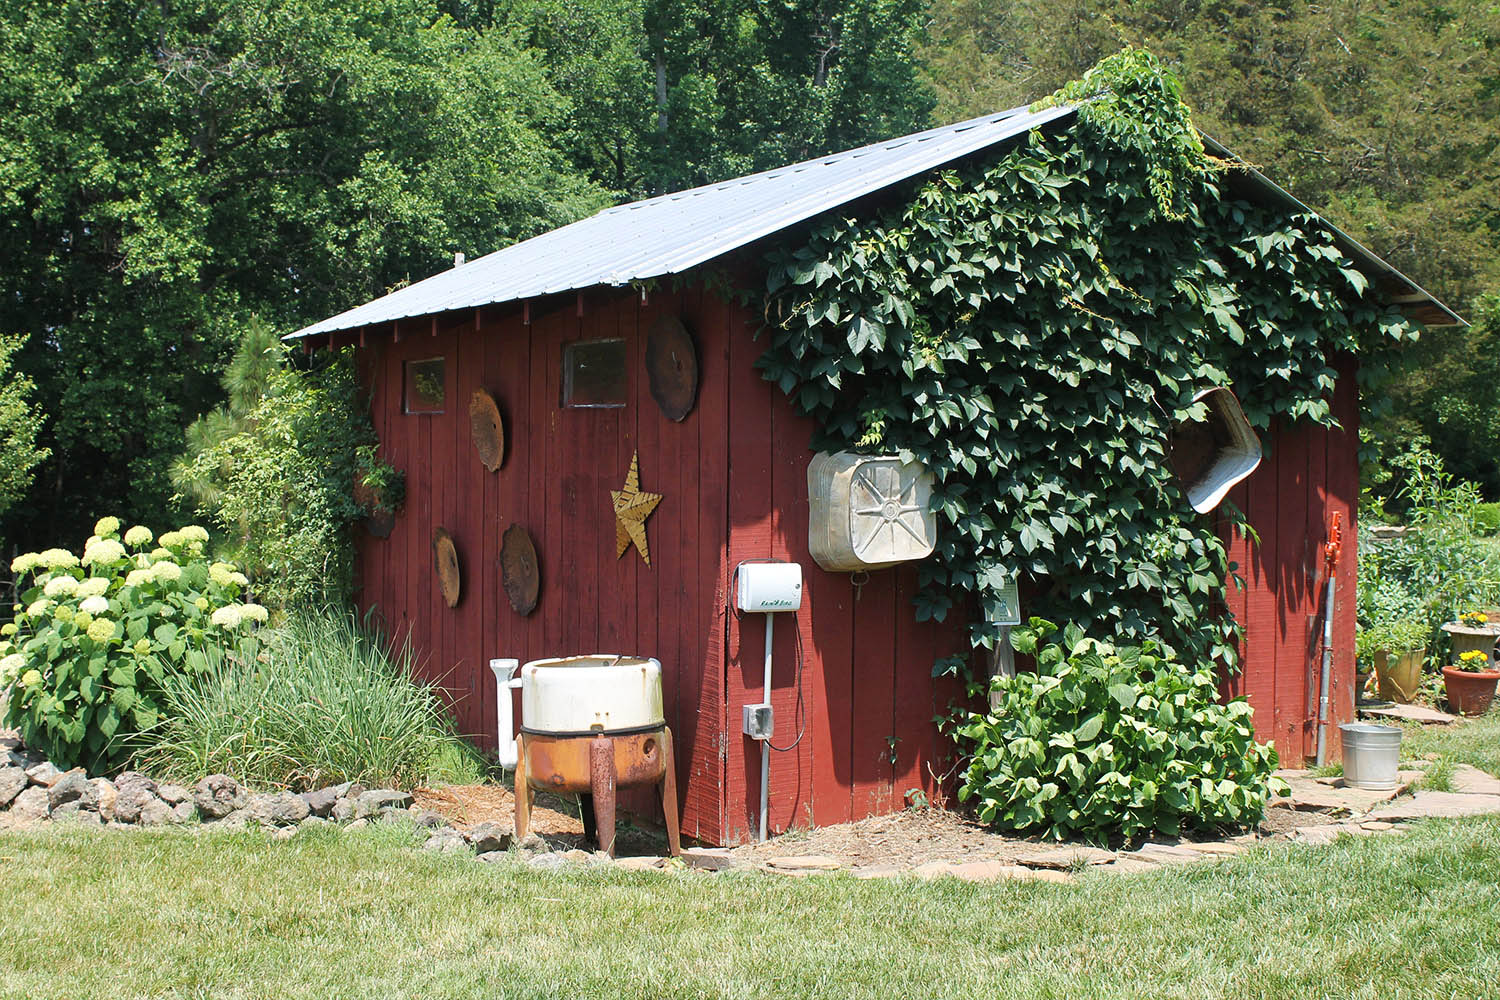 rustic-red-shed-with-ivy-and-flowers-antique-wash-tub-IMG_1434.jpg